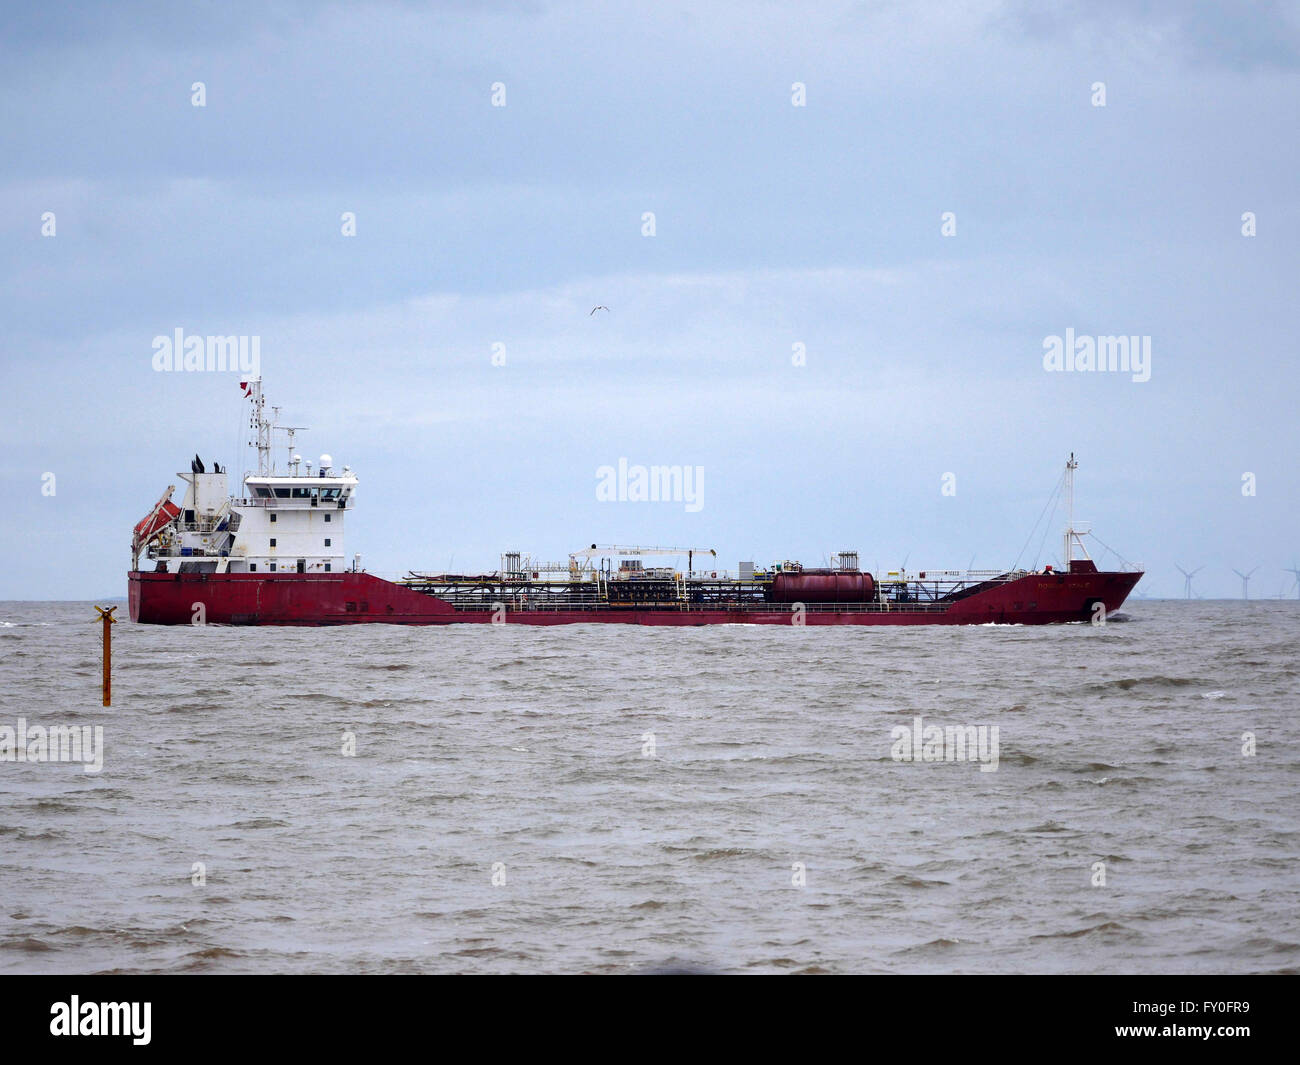 Shannon Fisher leaving the Port of Liverpool. Sailing past Burbo Bank near Crosby. Merseyside UK  Vessel SHANNON - Stock Image